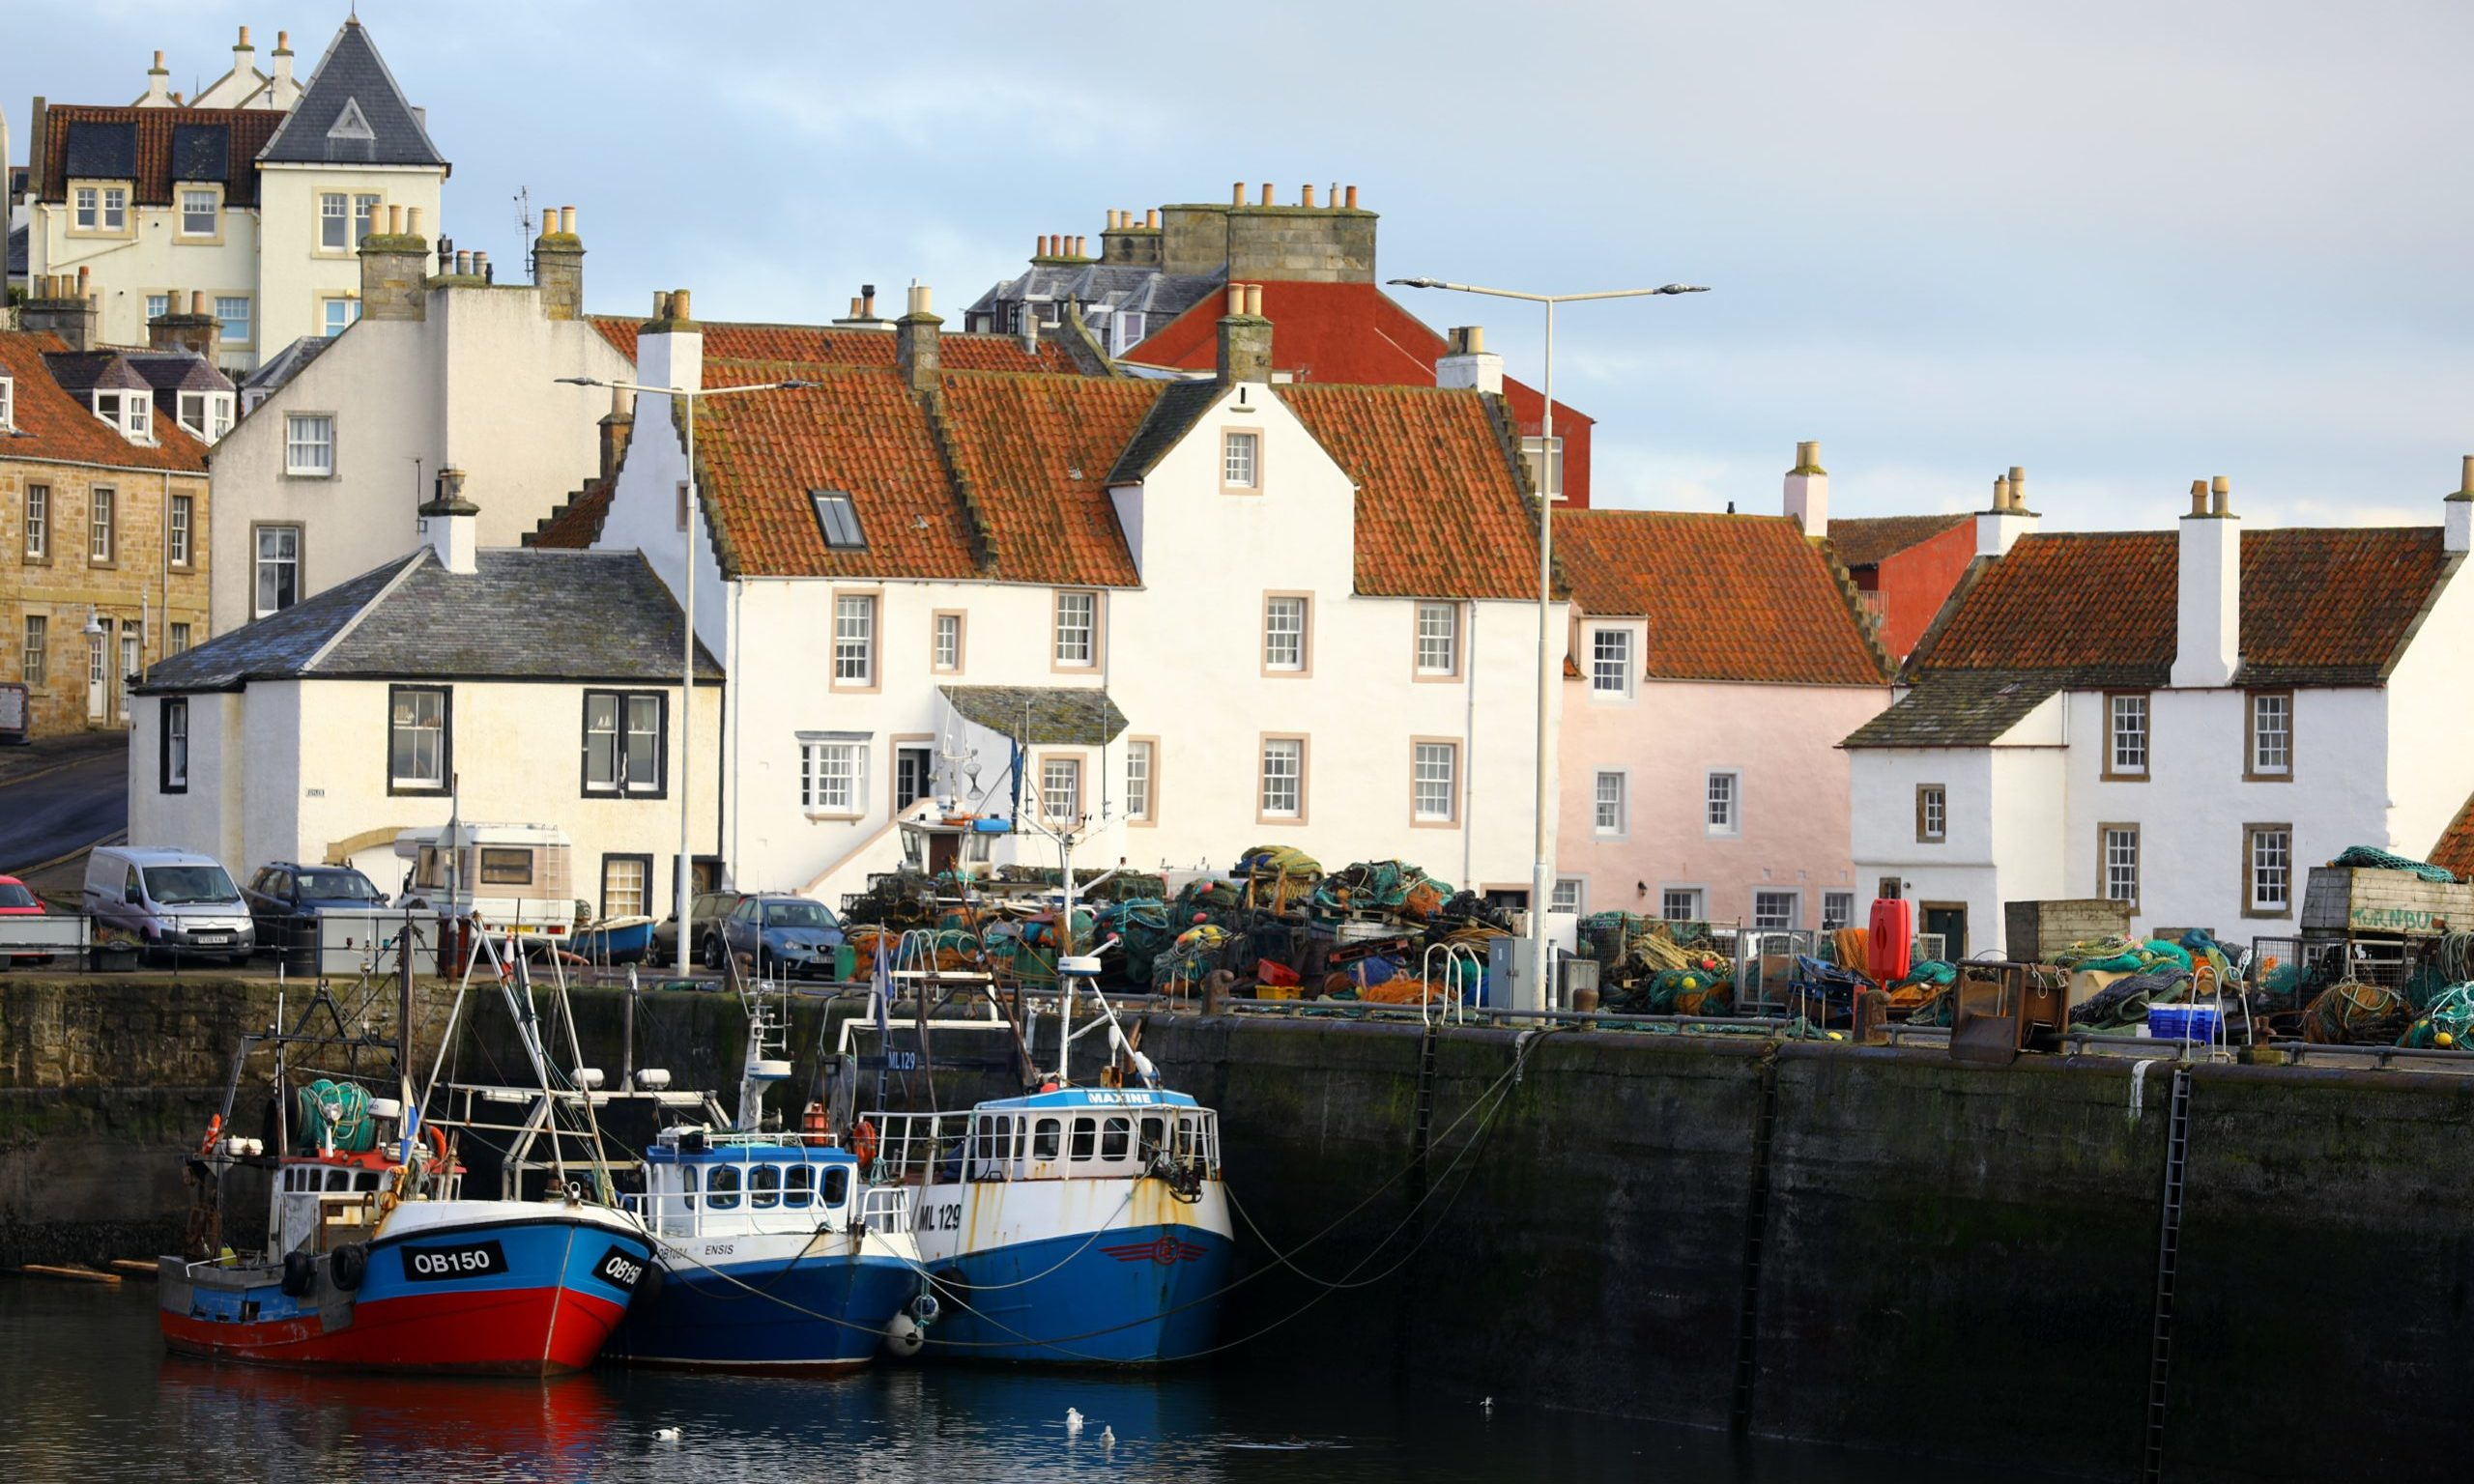 The picturesque East Neuk has been a haven for holiday homes in recent years.